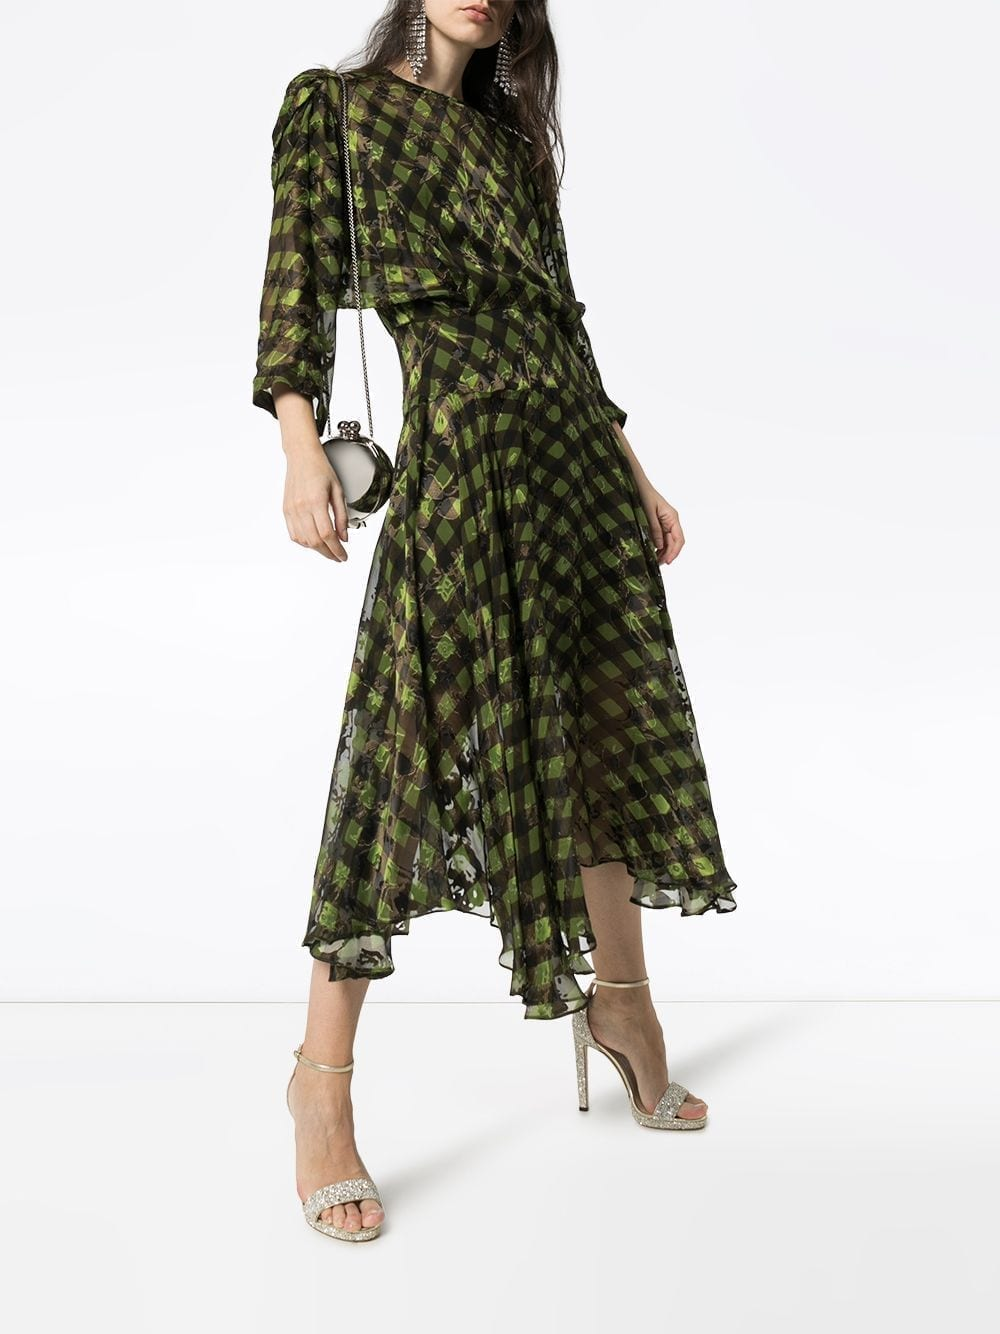 PREEN BY THORNTON BREGAZZI Brooke Gingham Midi Dress